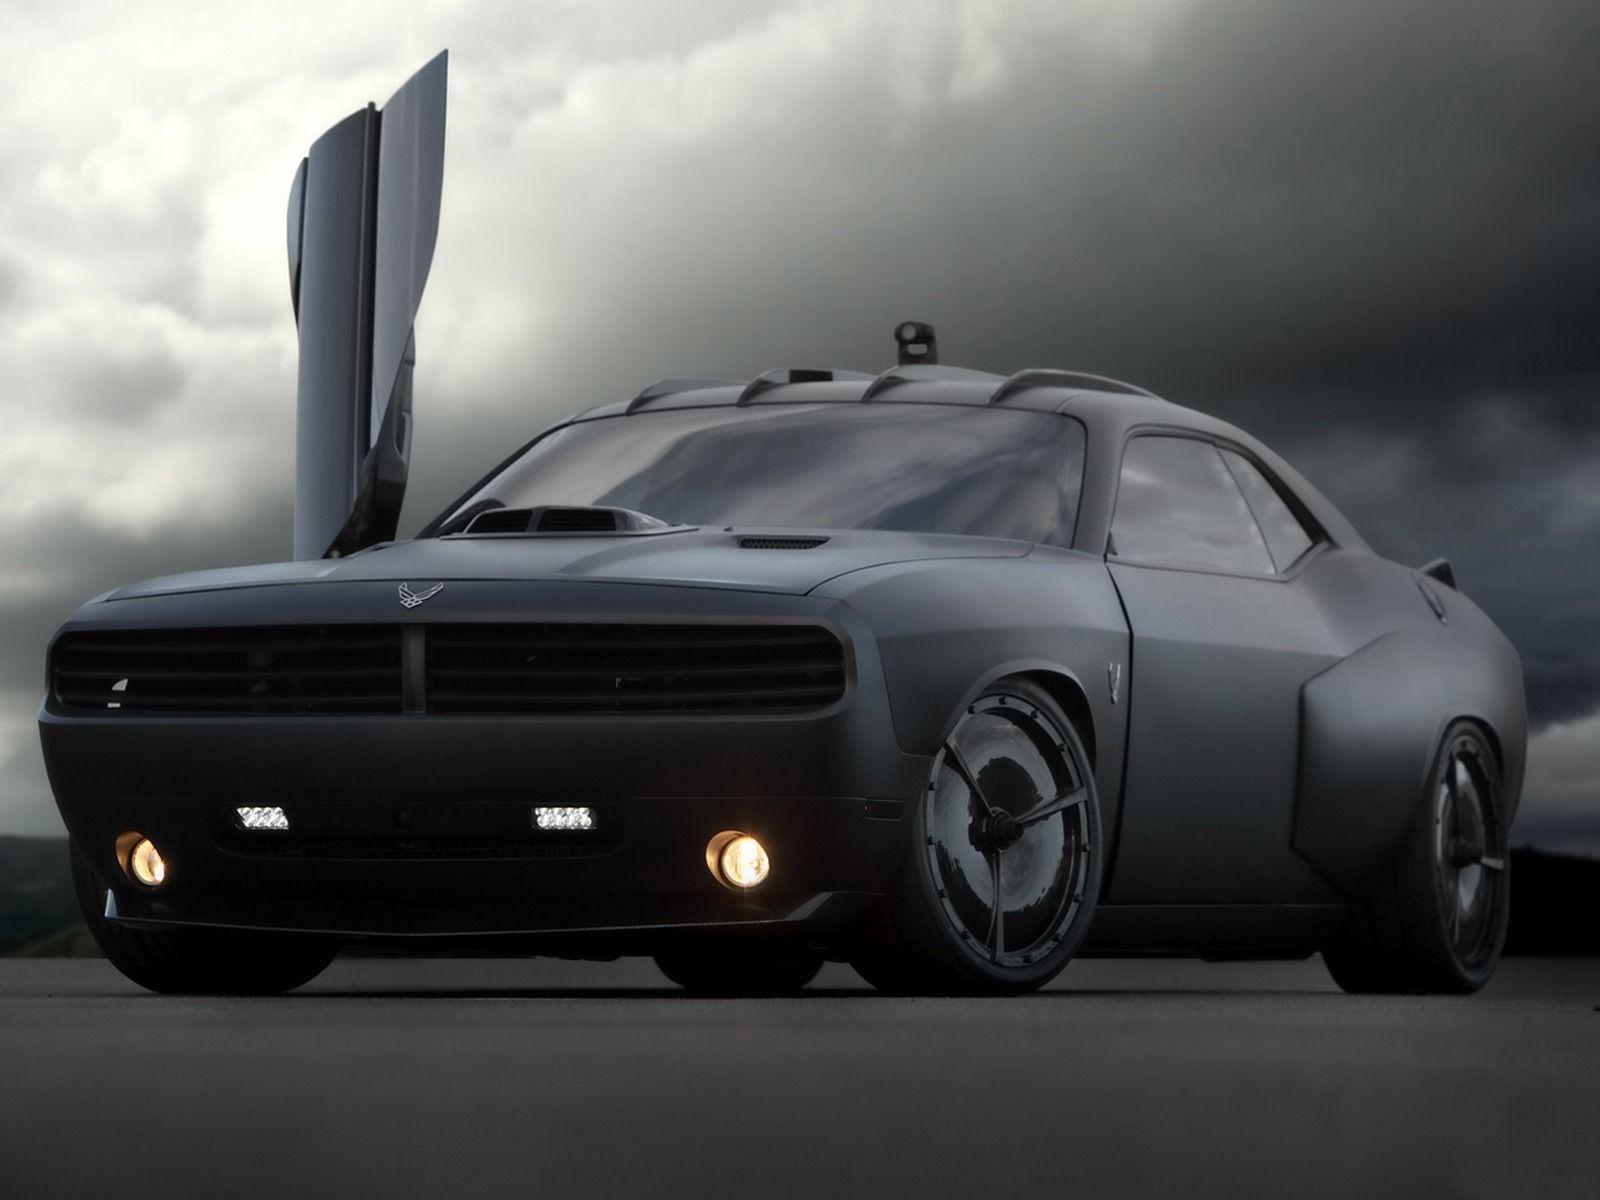 Dodge challenger vapor wallpaper, Dodge, Cars Wallpapers